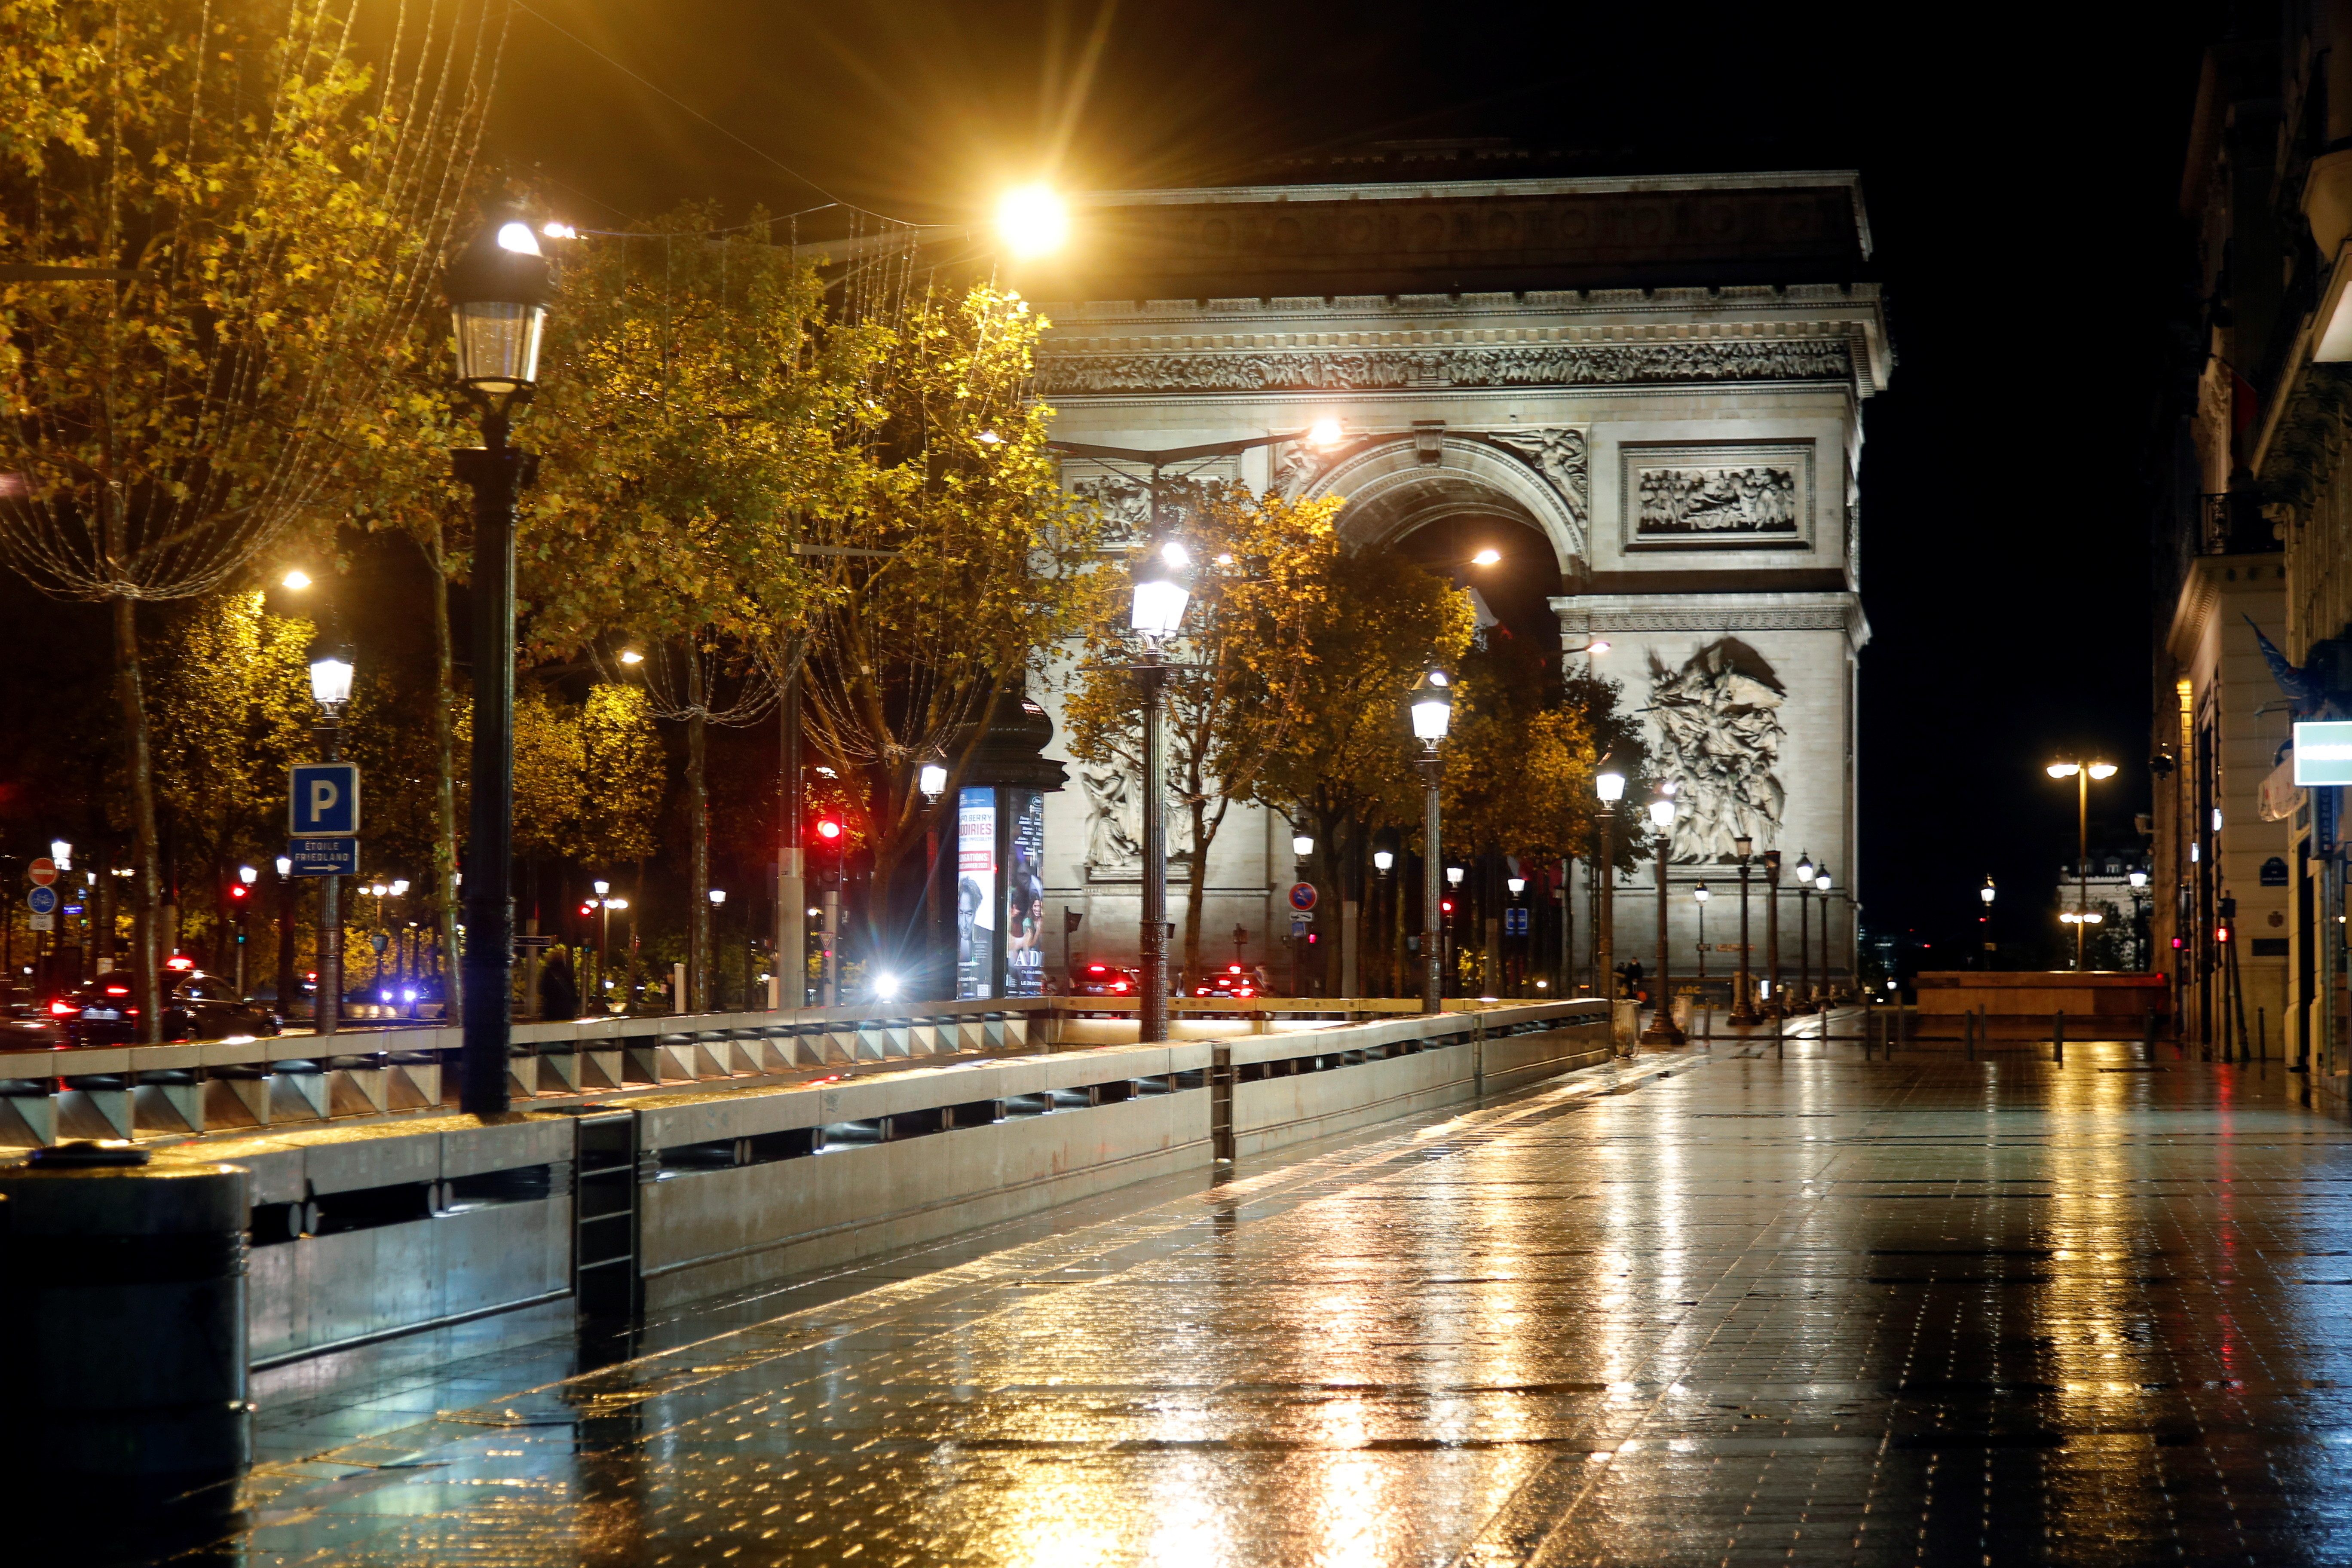 A deserted Champs-Elysees avenue is seen near the Arc de Triomphe in france during the covid curfew lockdown